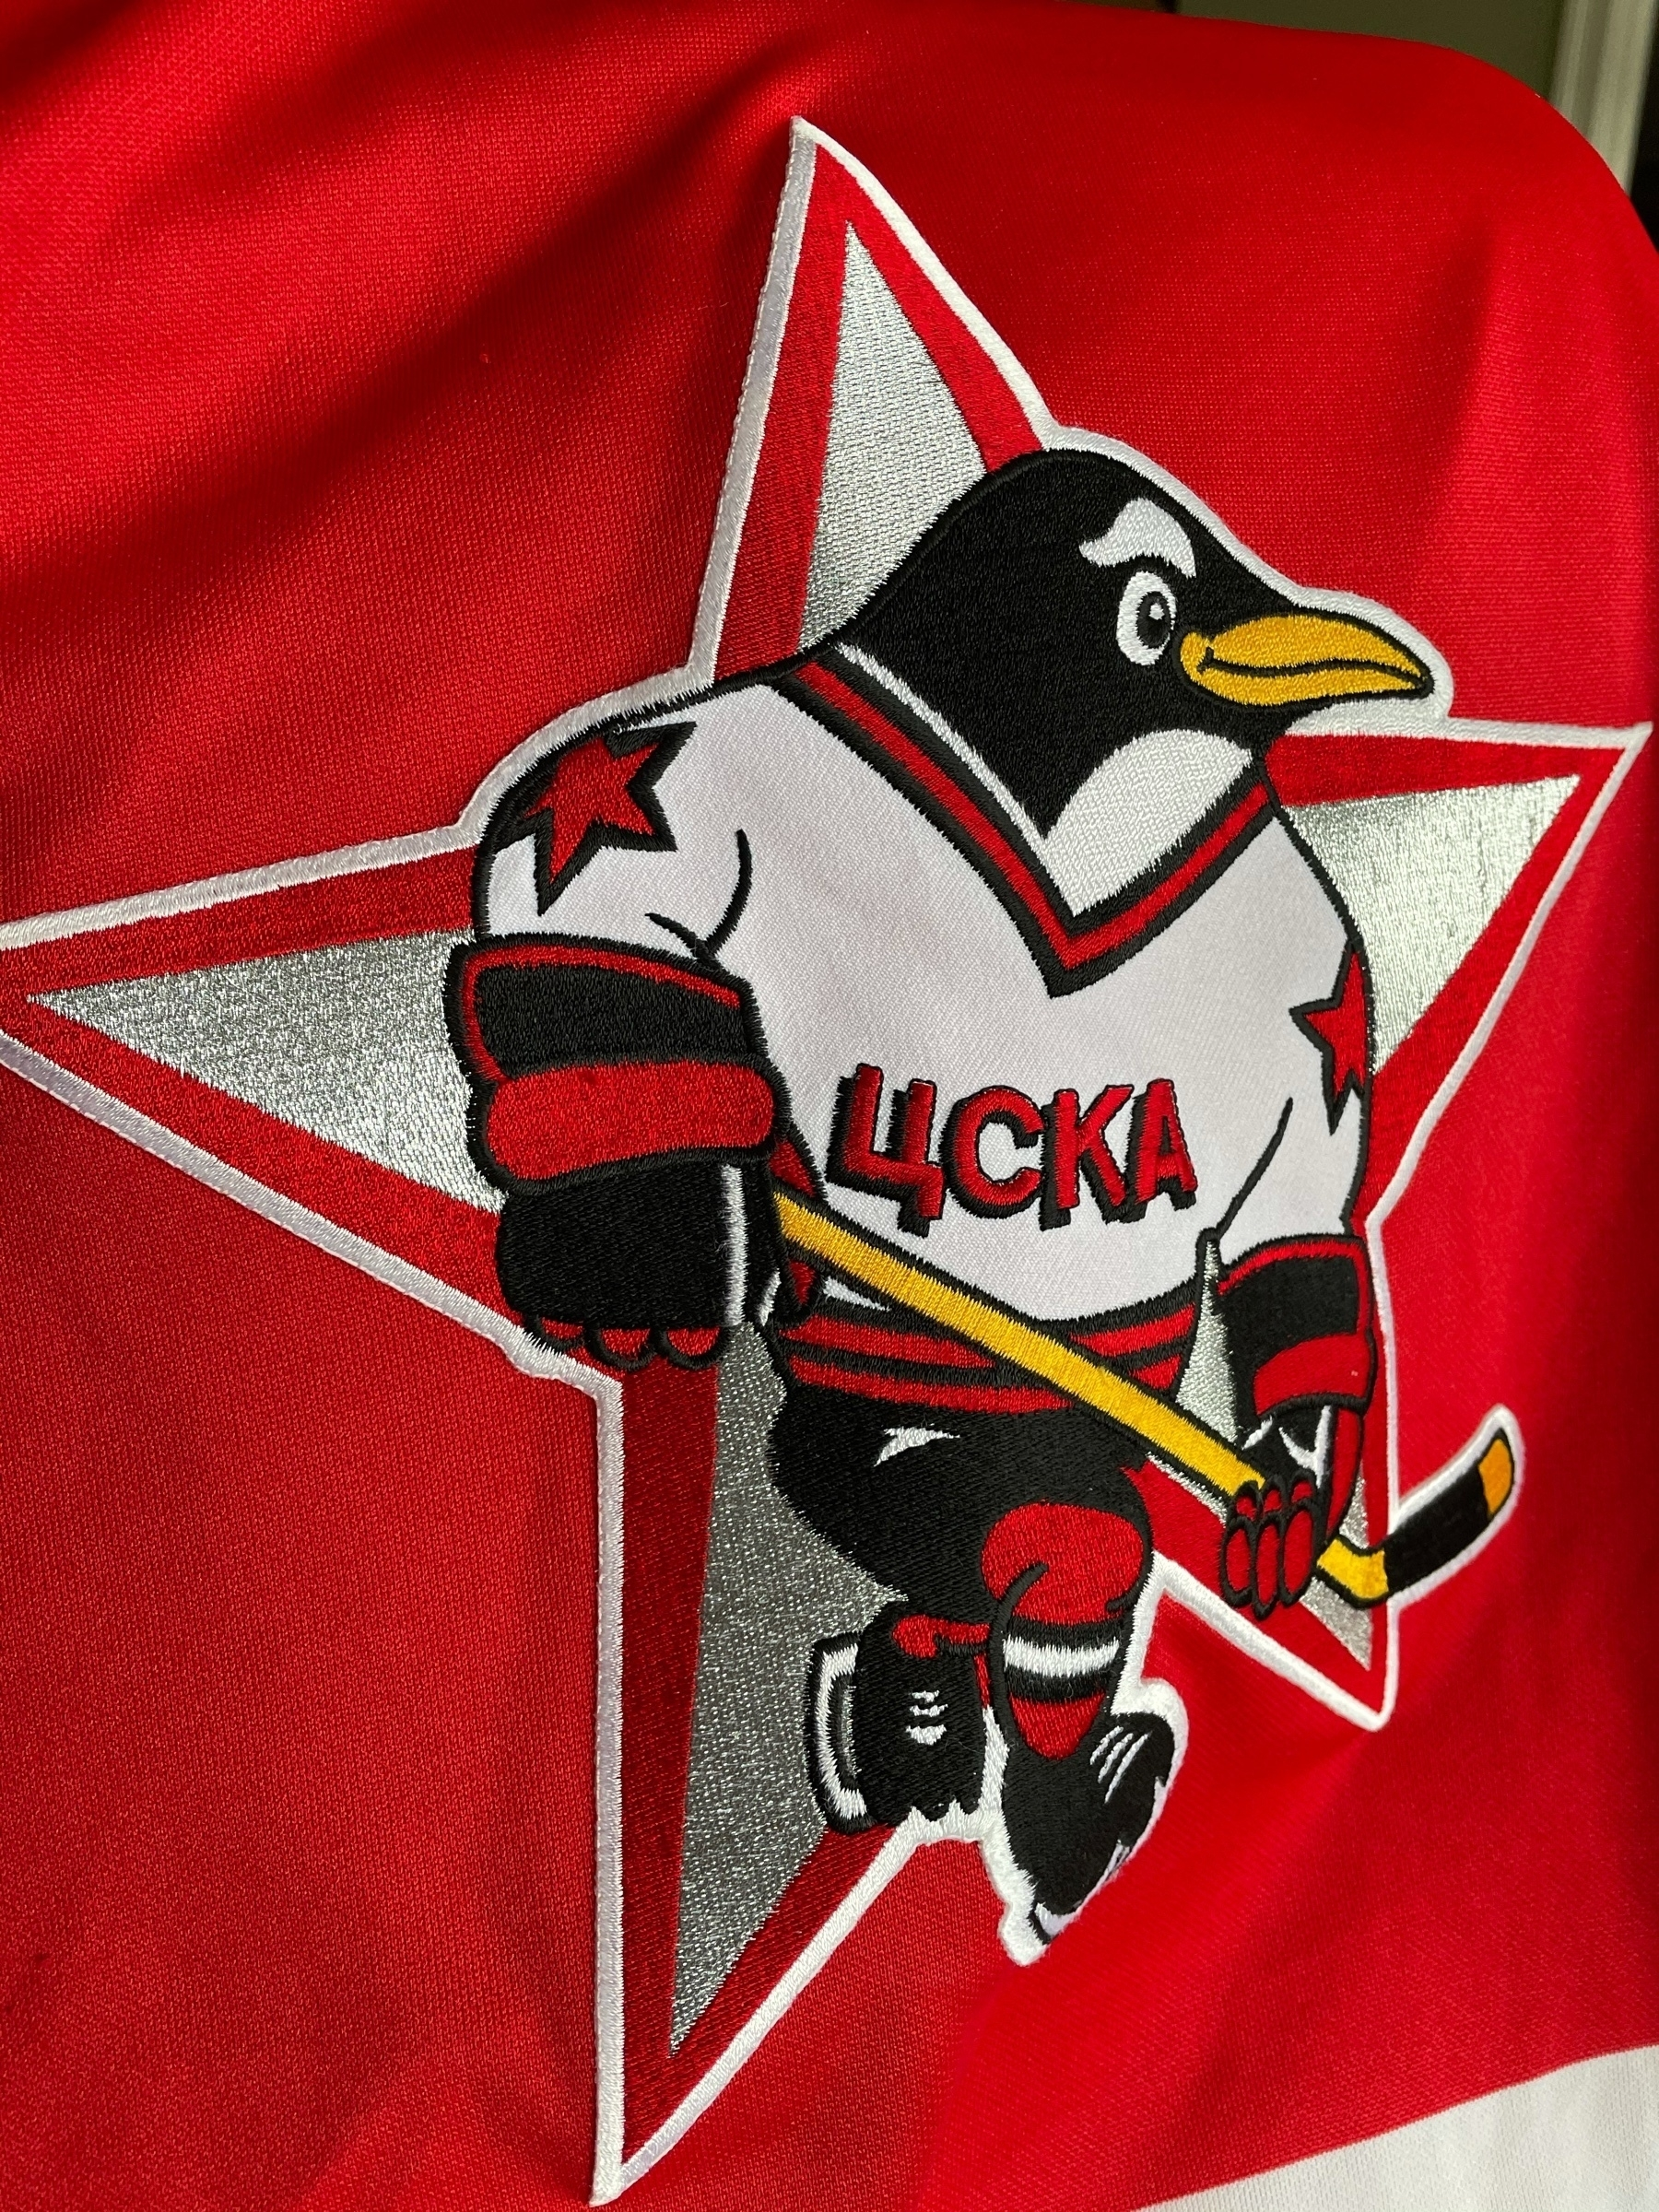 Russian Penguins jersey crest featuring a hockey playing penguin on a silver star